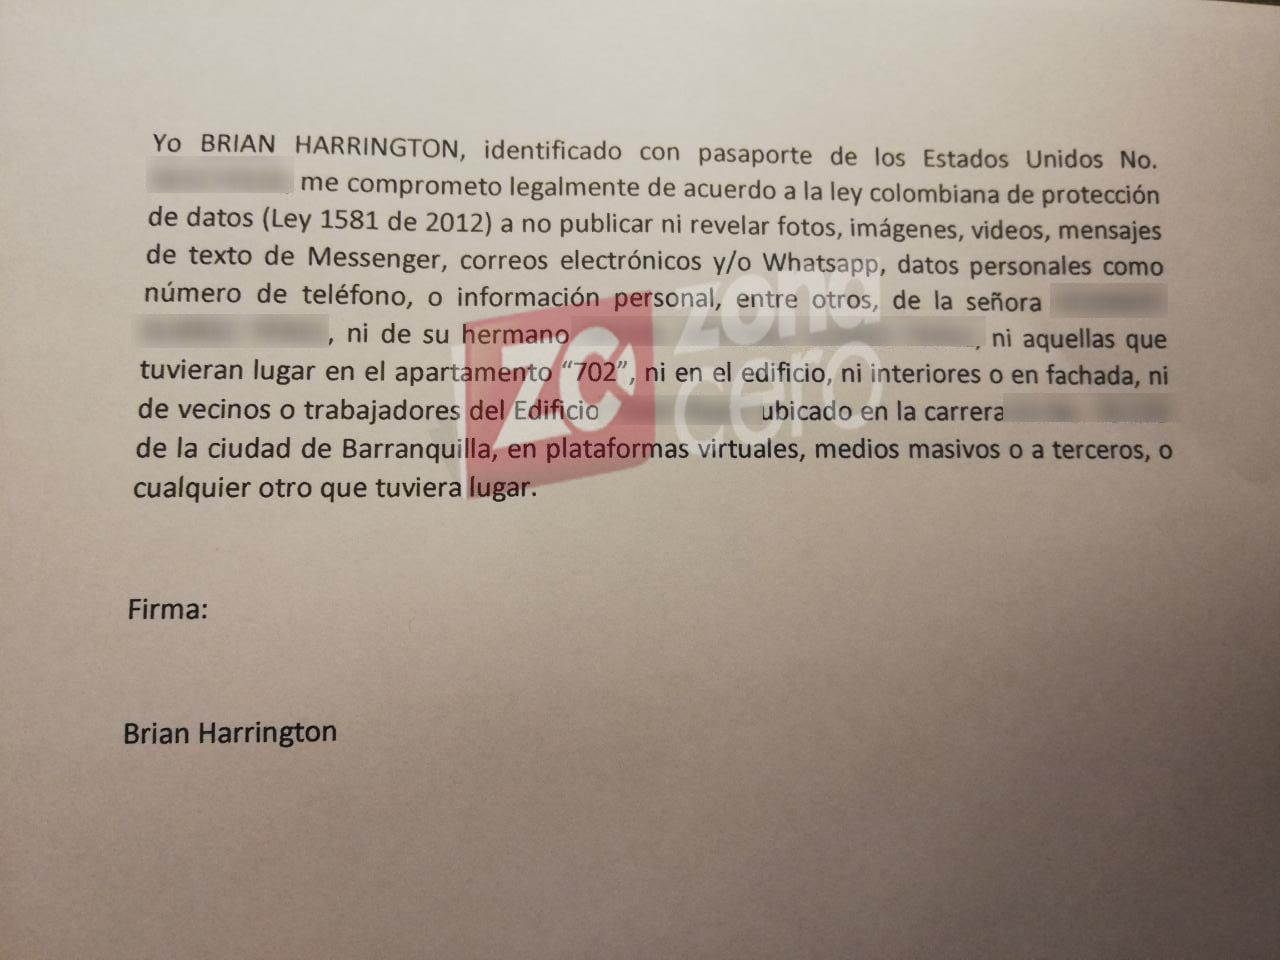 La carta de Brian Harrington.